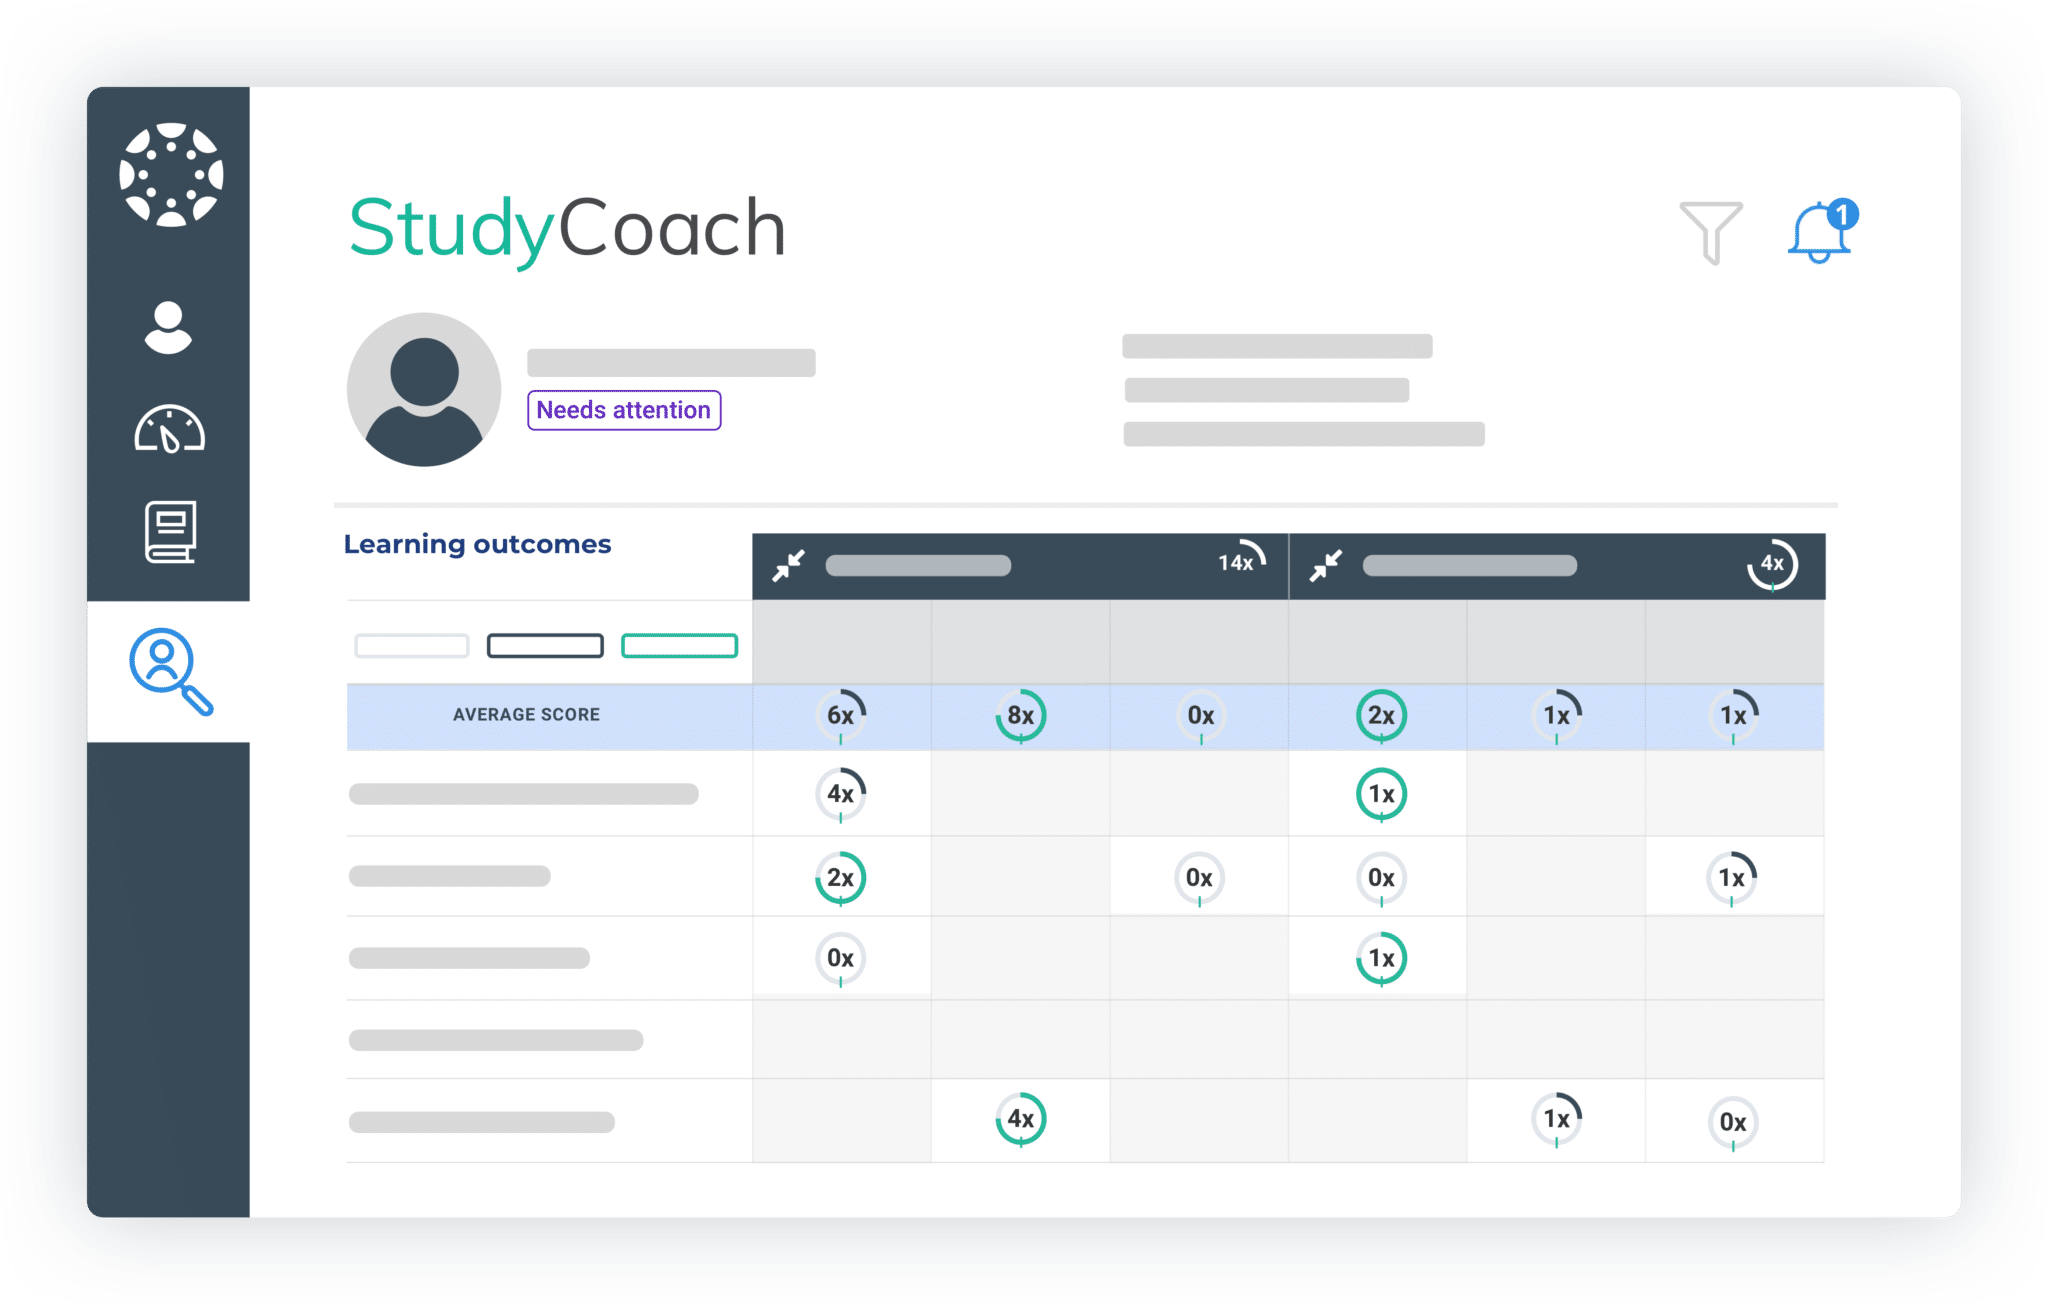 2. Coach on student view with Learning outcomes